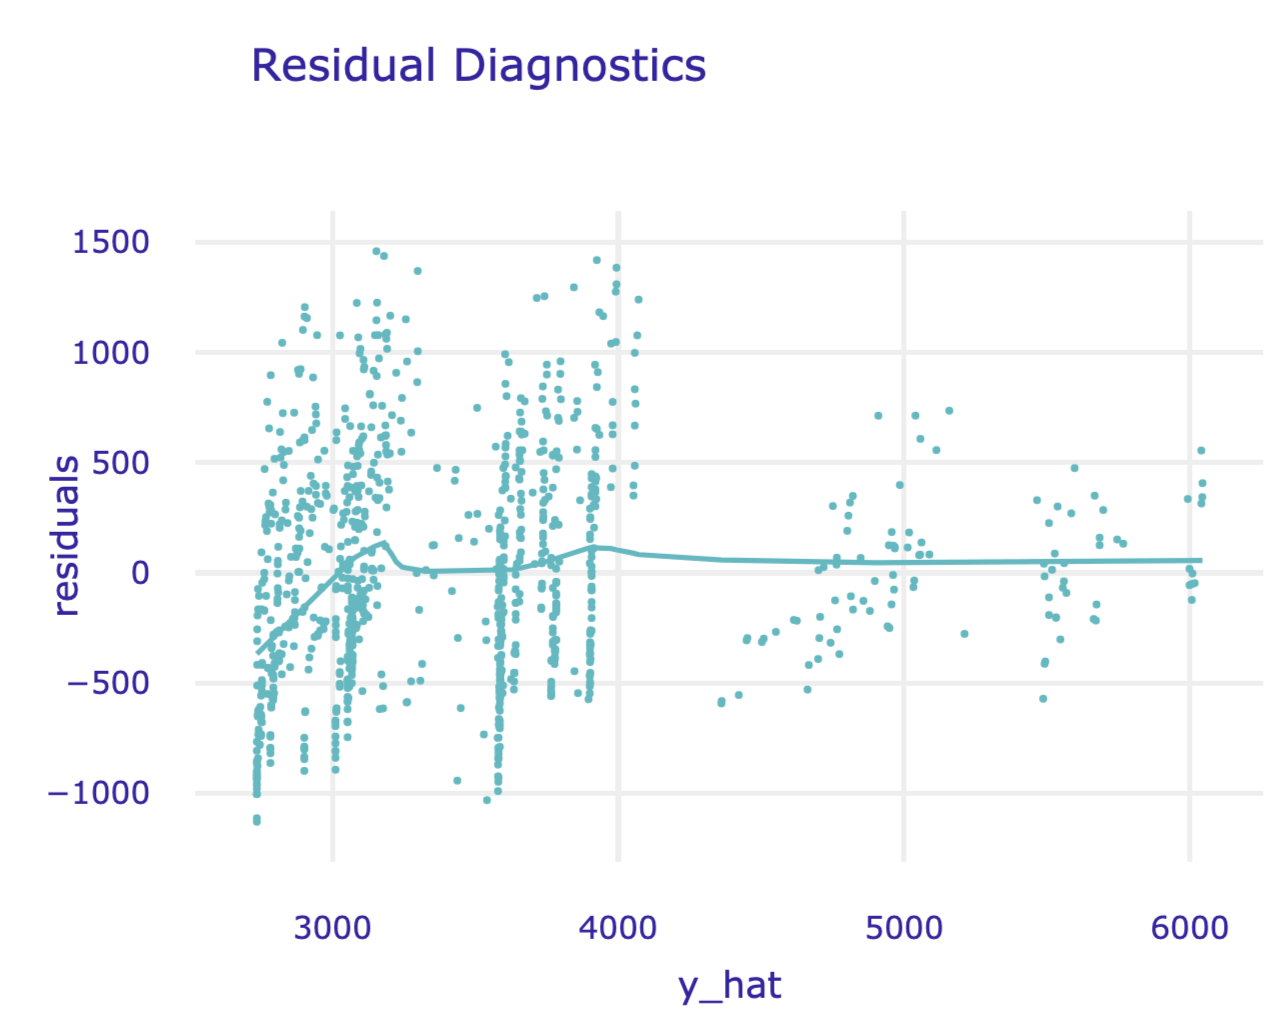 Residuals versus predicted values for the random forest model for the Apartments data.